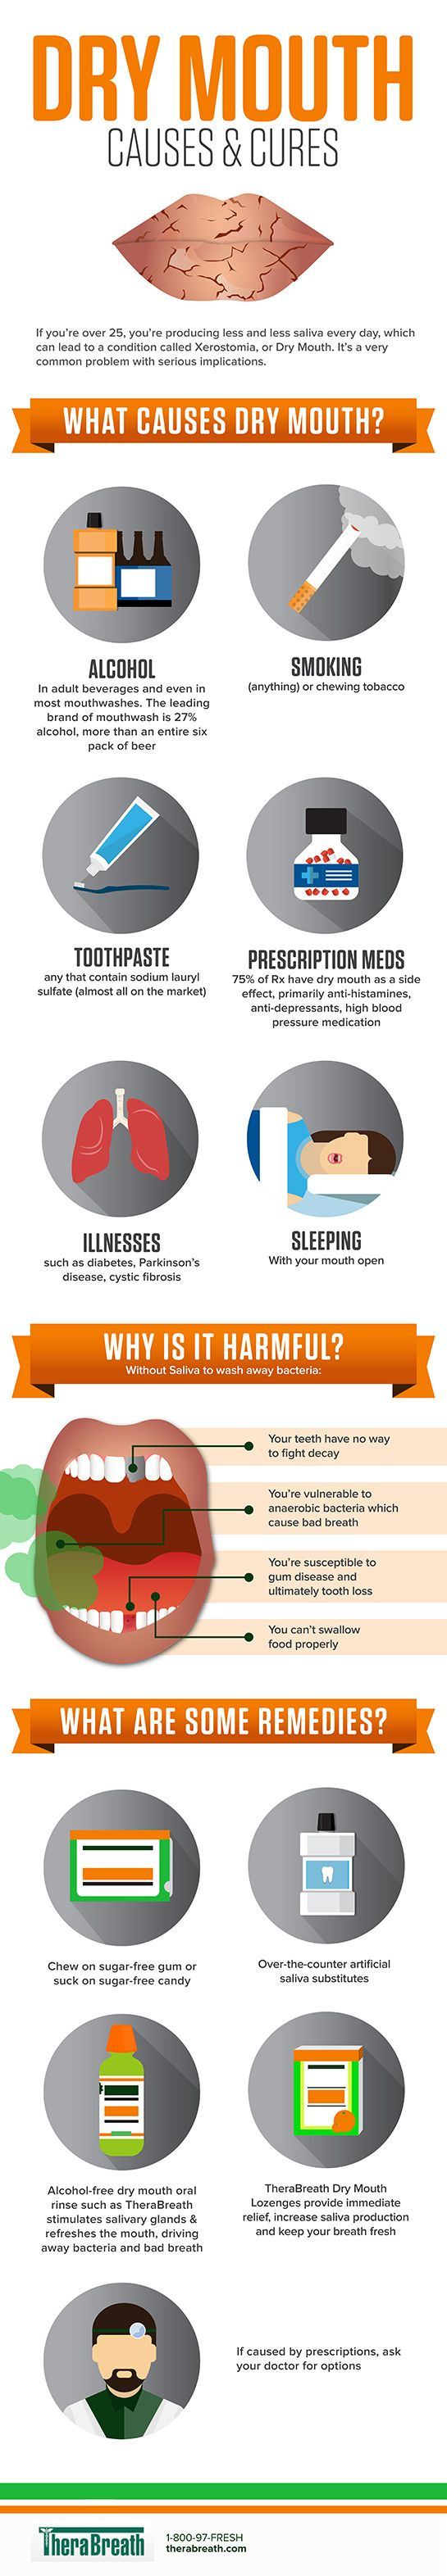 Dry Mouth Causes And Cures